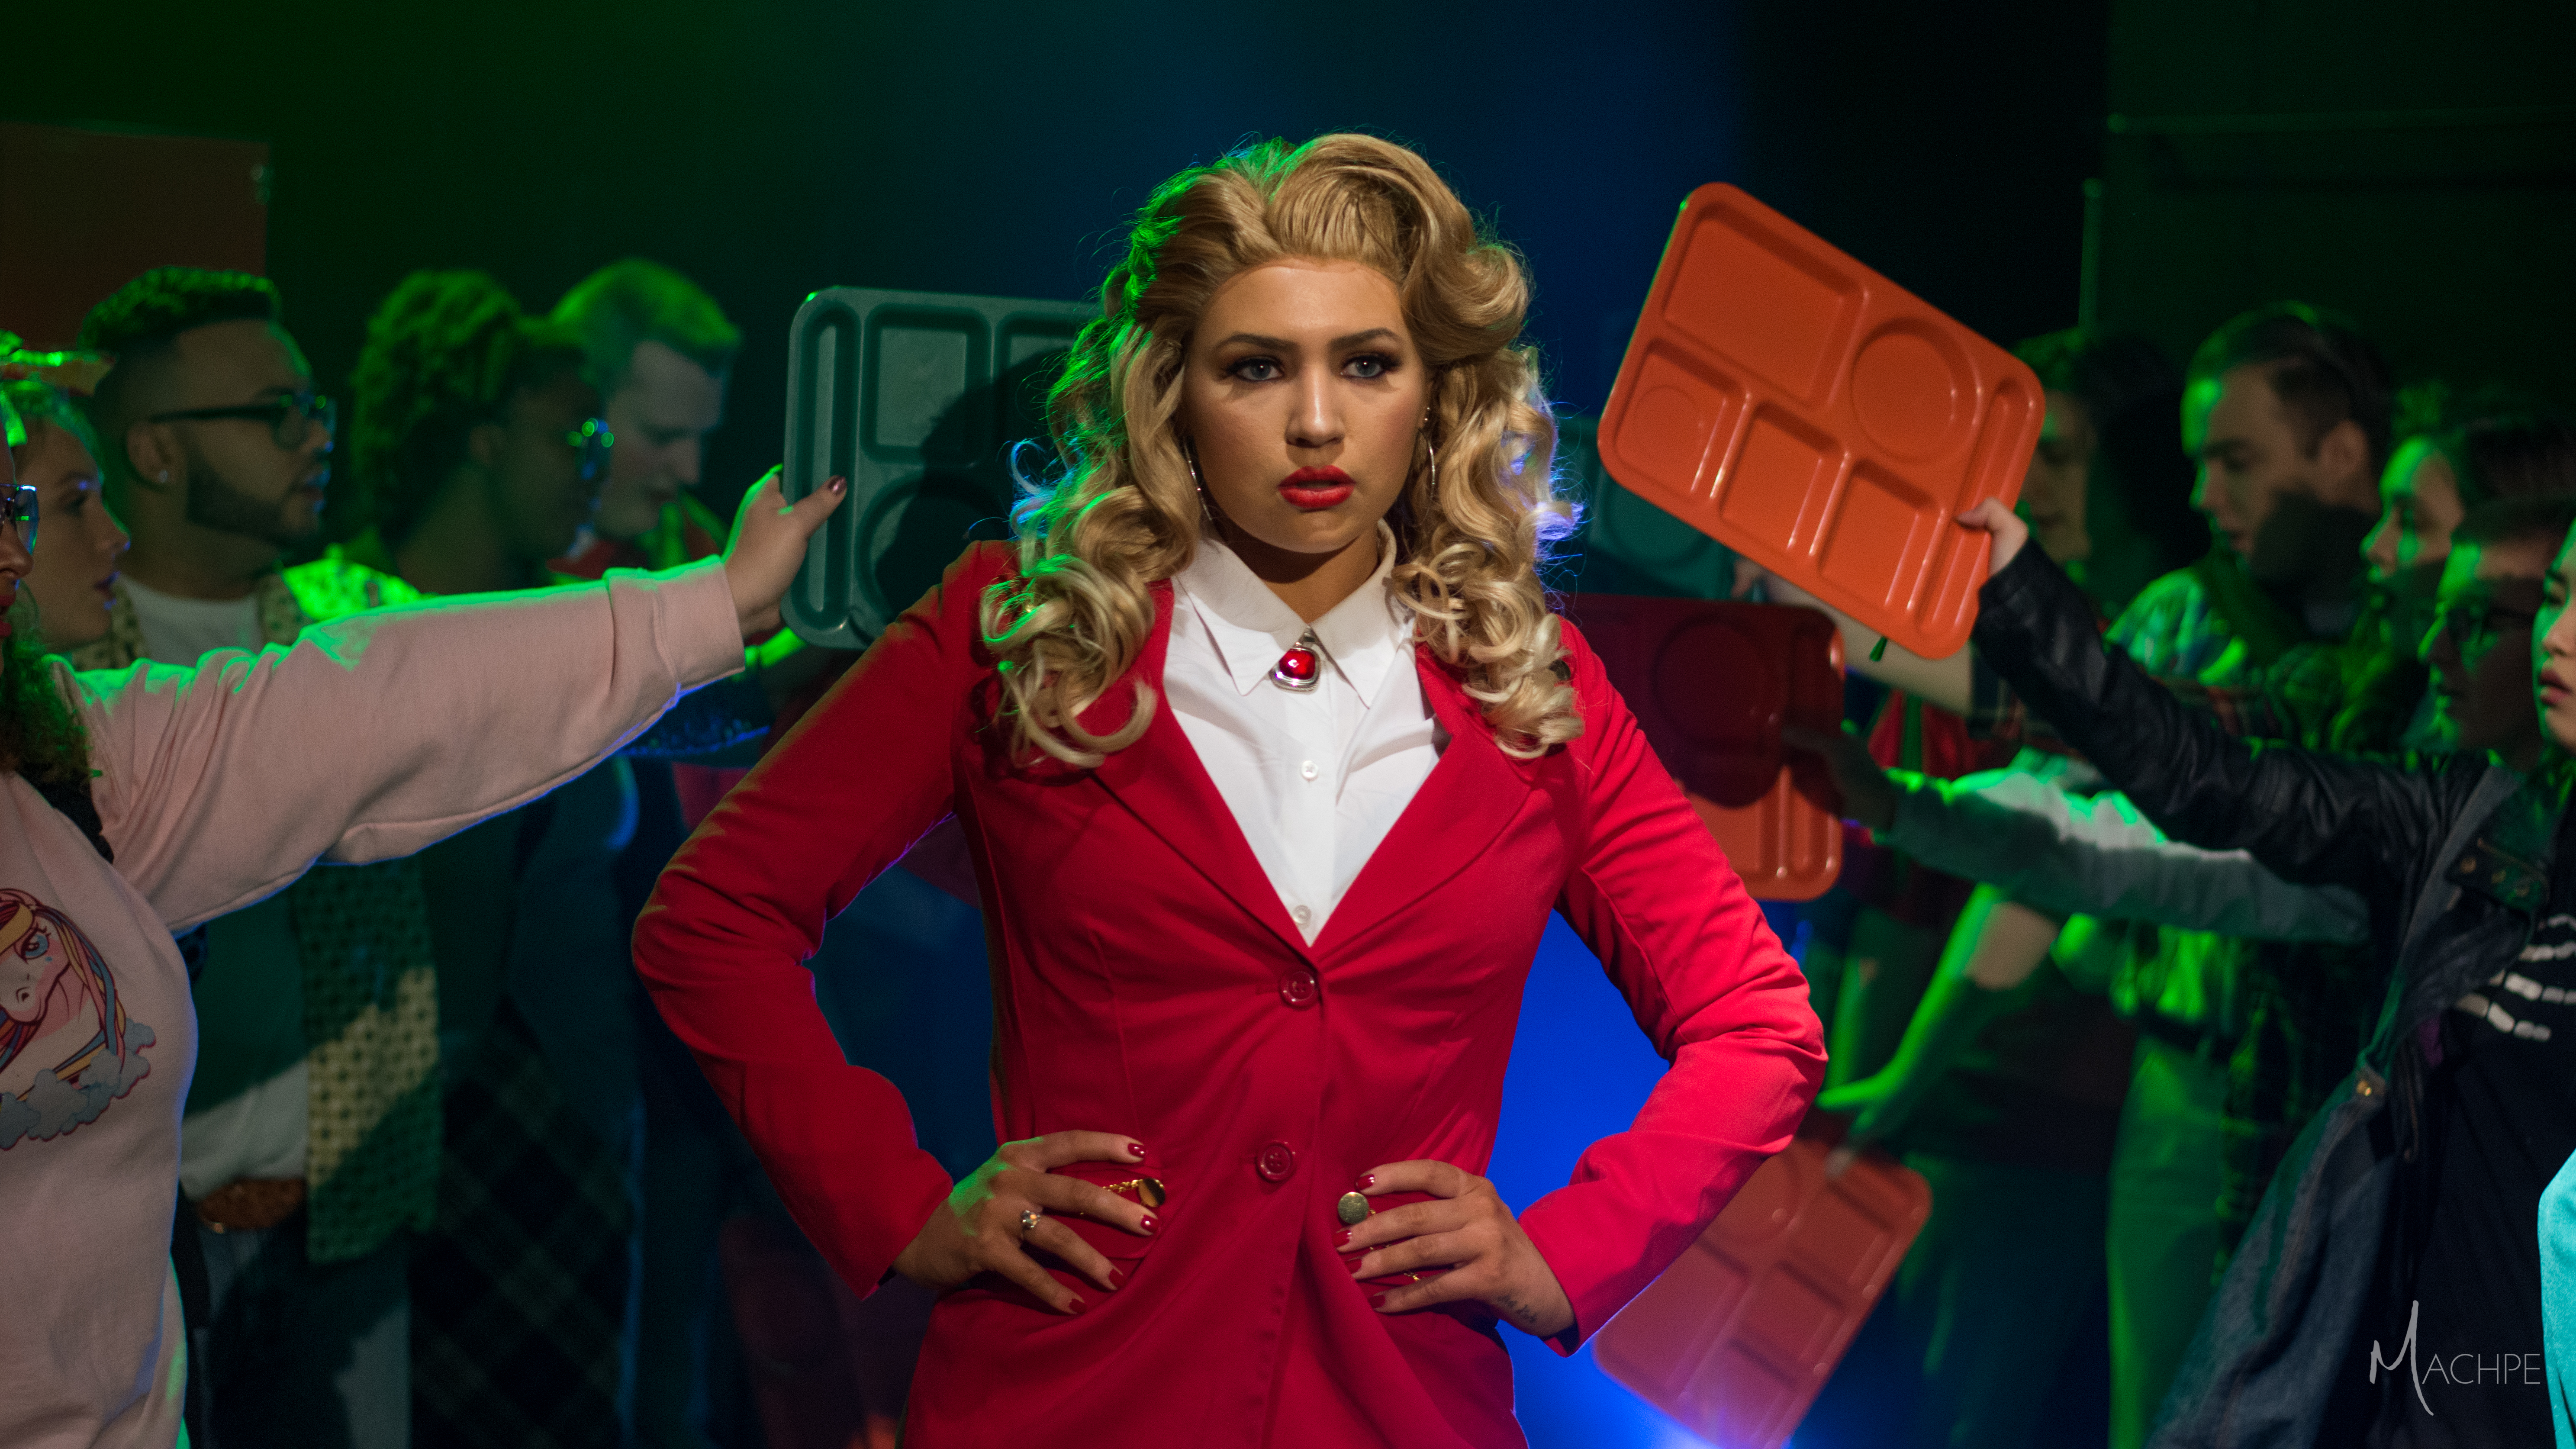 Sydney Phipps as Heather Chandler